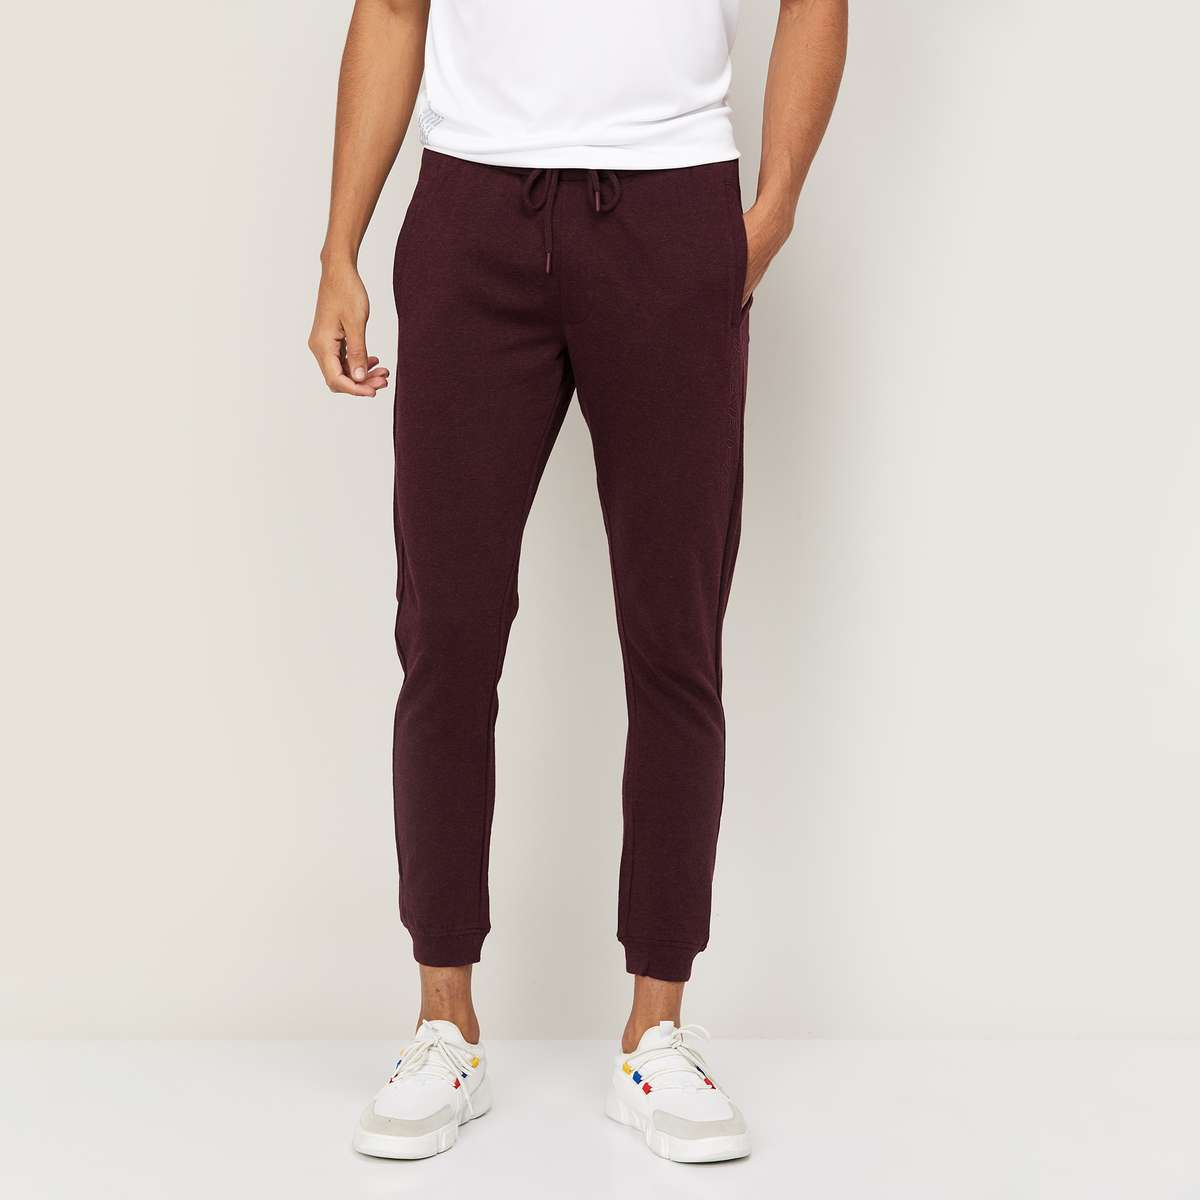 2.KAPPA Men Solid Elasticated Joggers